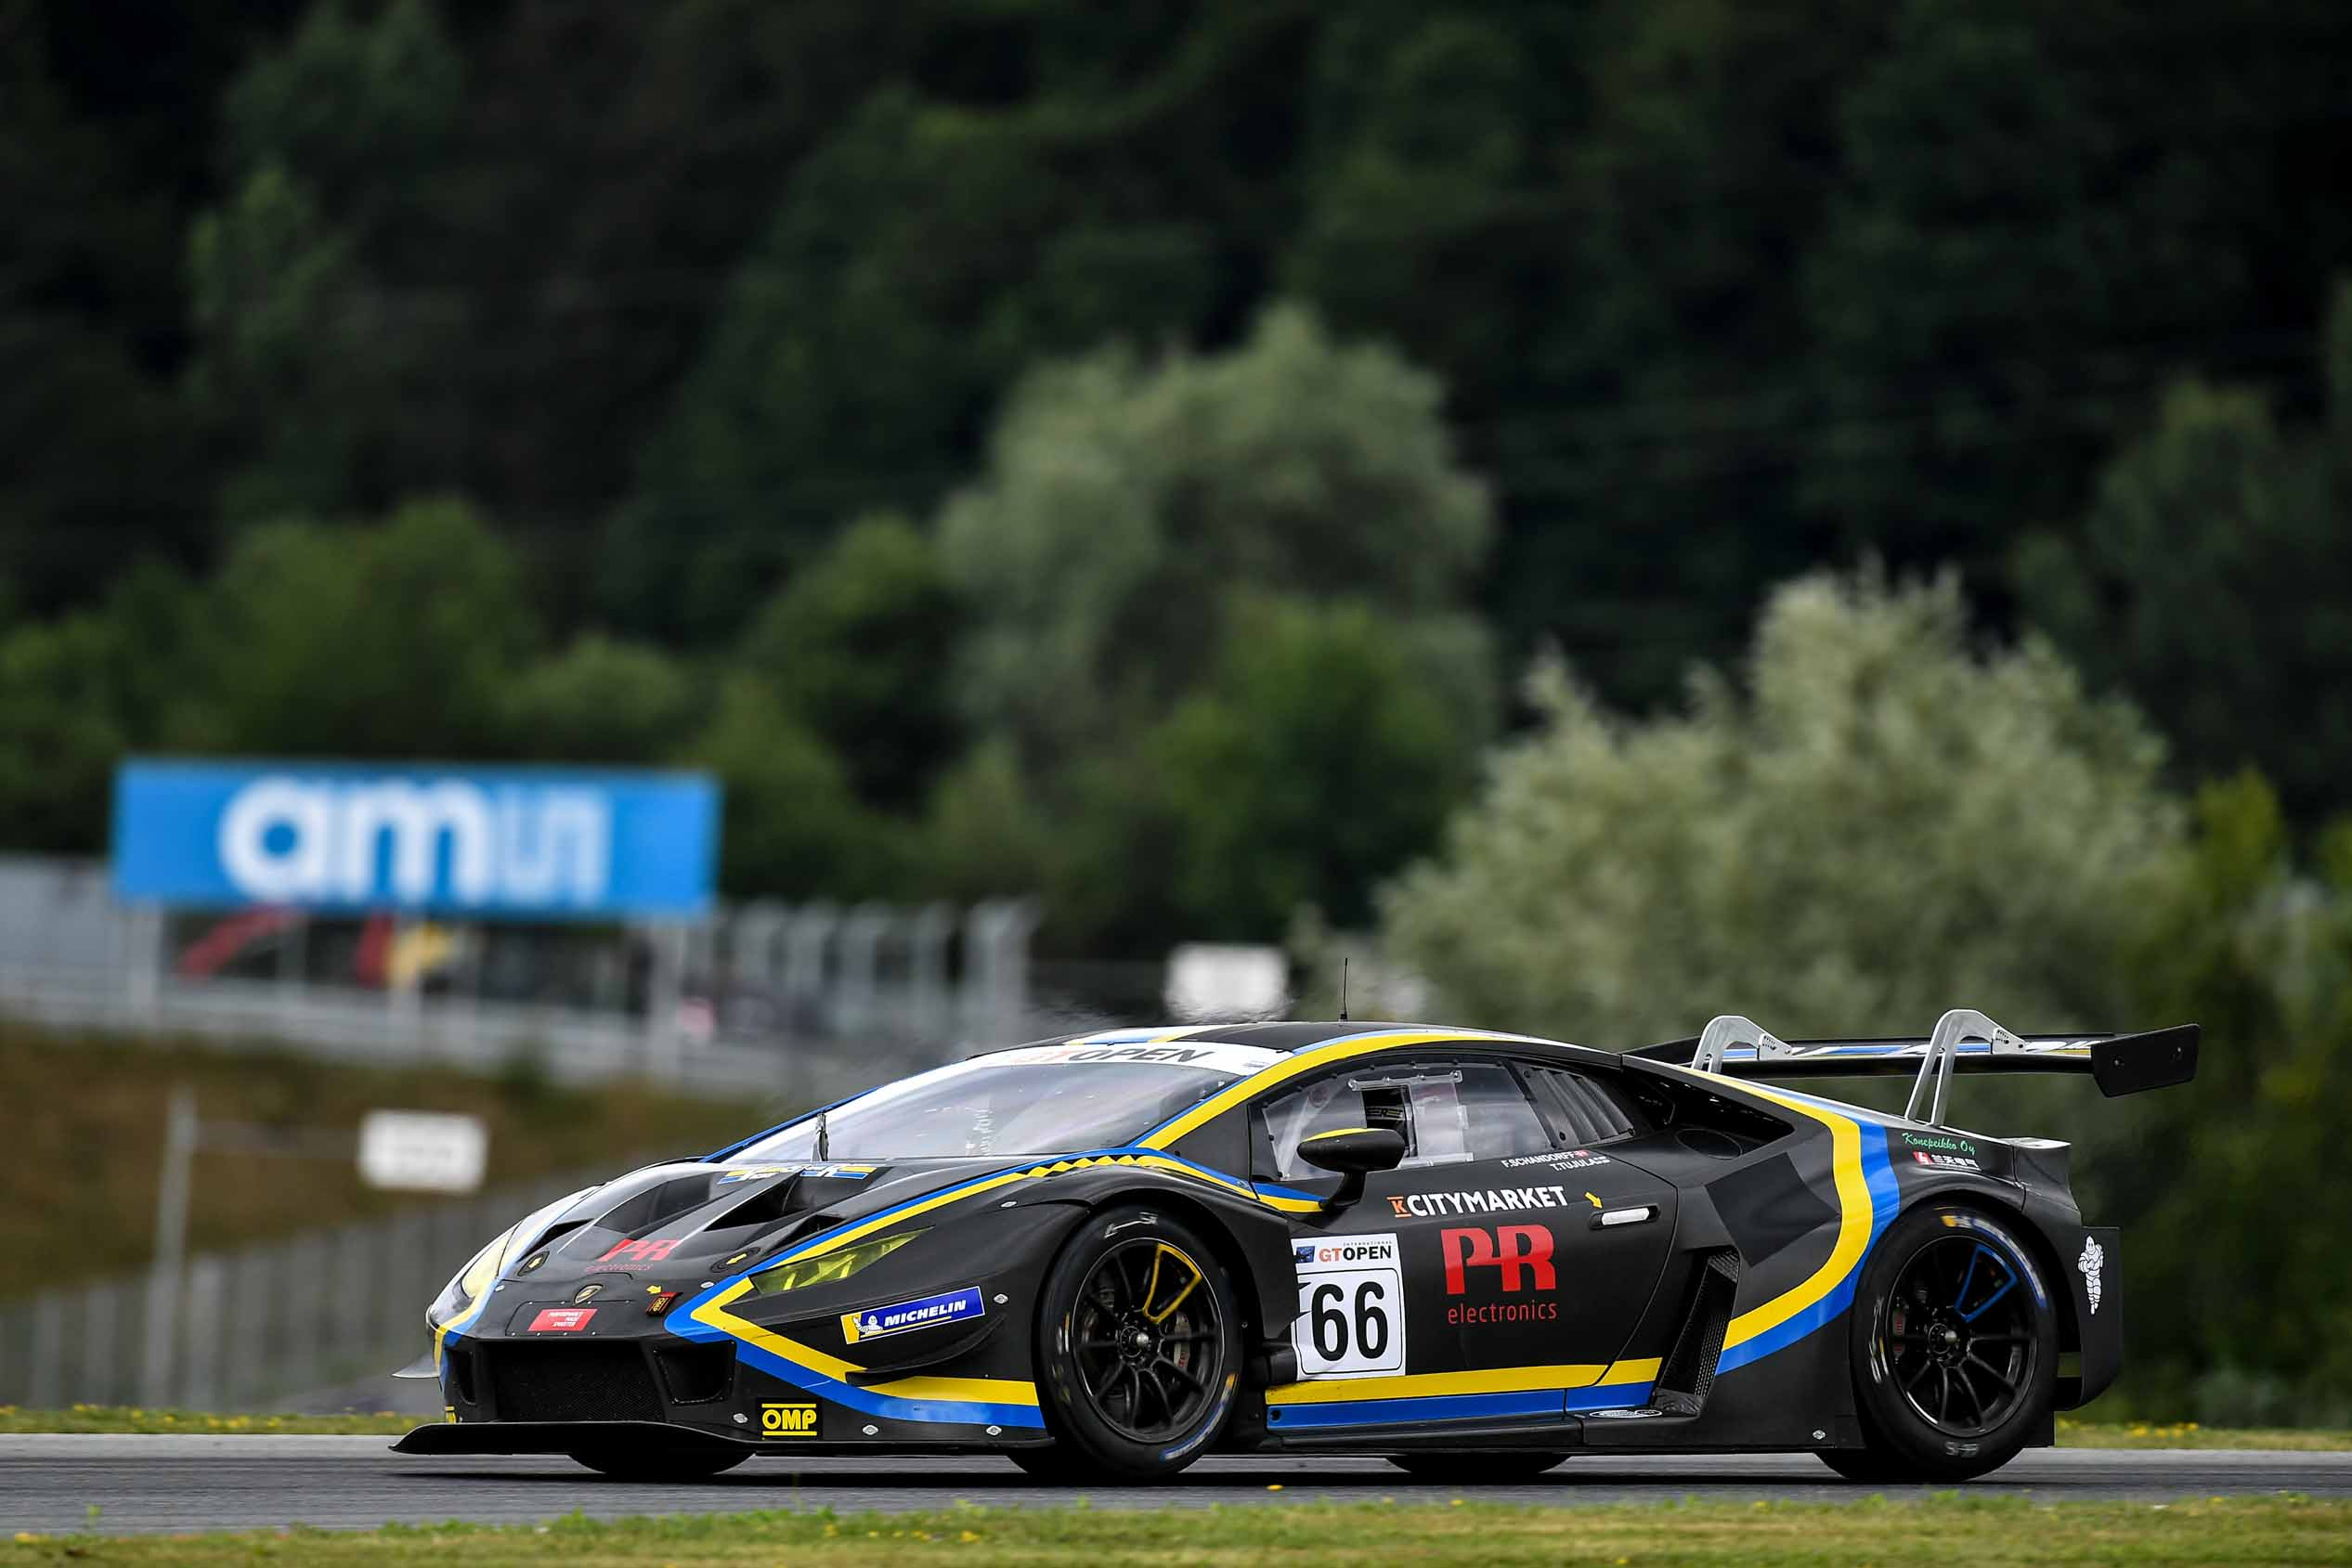 SCHANDORFF AND TUJULA VICTORIOUS AT THE RED BULL RING